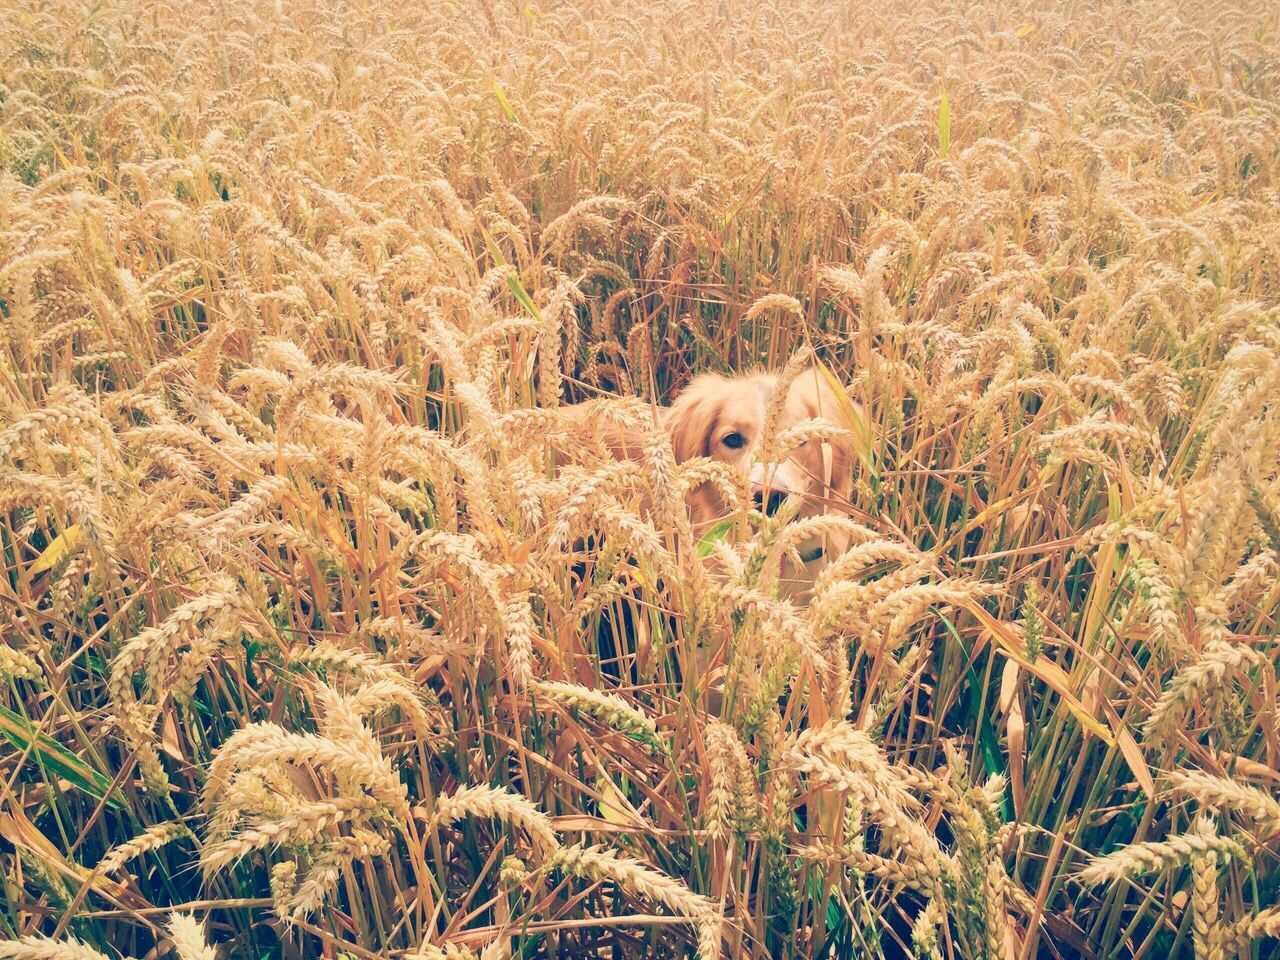 Dog Field Hidden Wheat Golden Gold Animal Summer Sun Camouflage HEAD Hide Landscape Yellow Shiny Sunny Love Doglover Amazing IPhone Photography Good Days  Nature Wood #walk